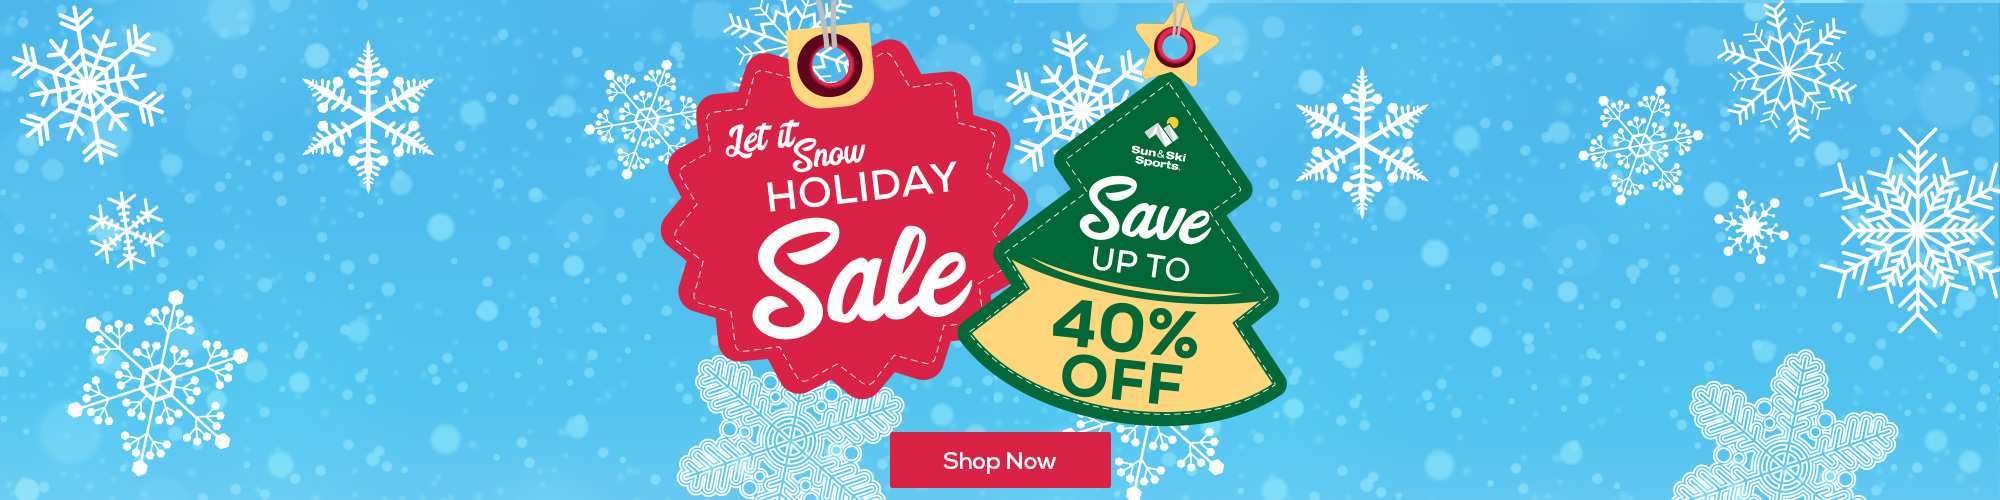 Holiday Sale. Save up to 40% off